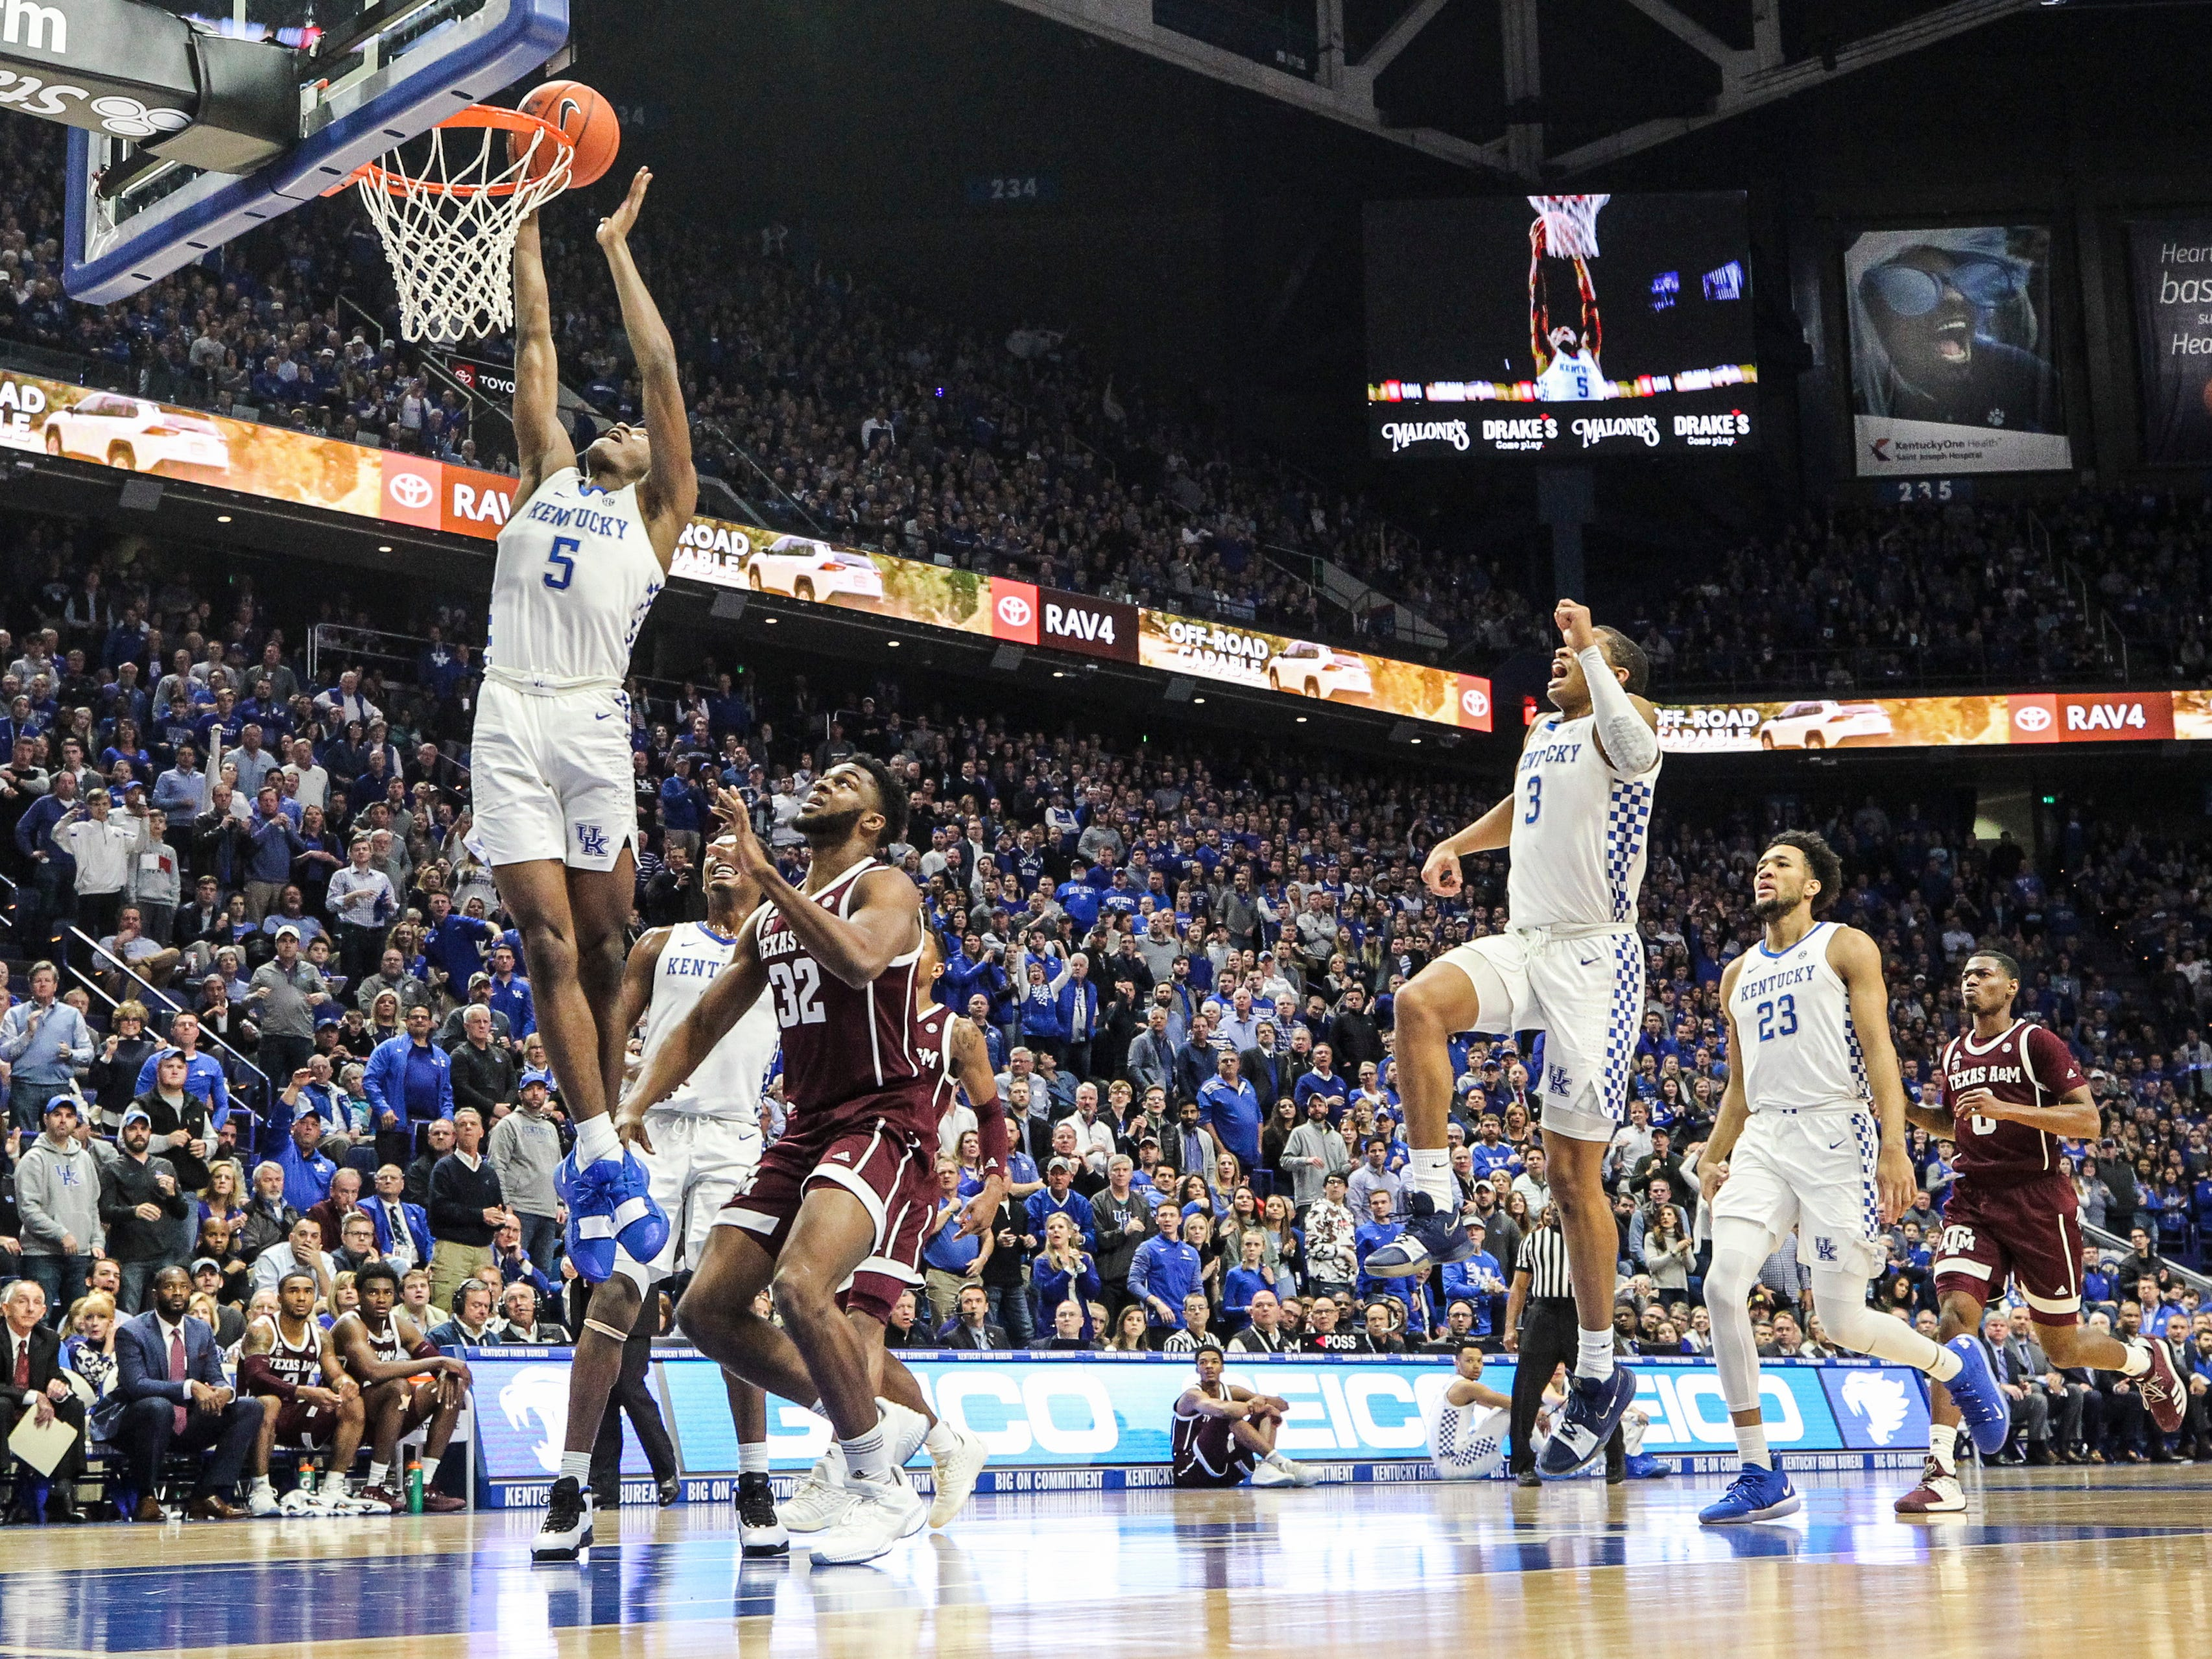 Kentucky's Immanueal Quickley gets two points with this lay-up in the first half Tuesday night against Texas A&M at Rupp Arena in Lexington.